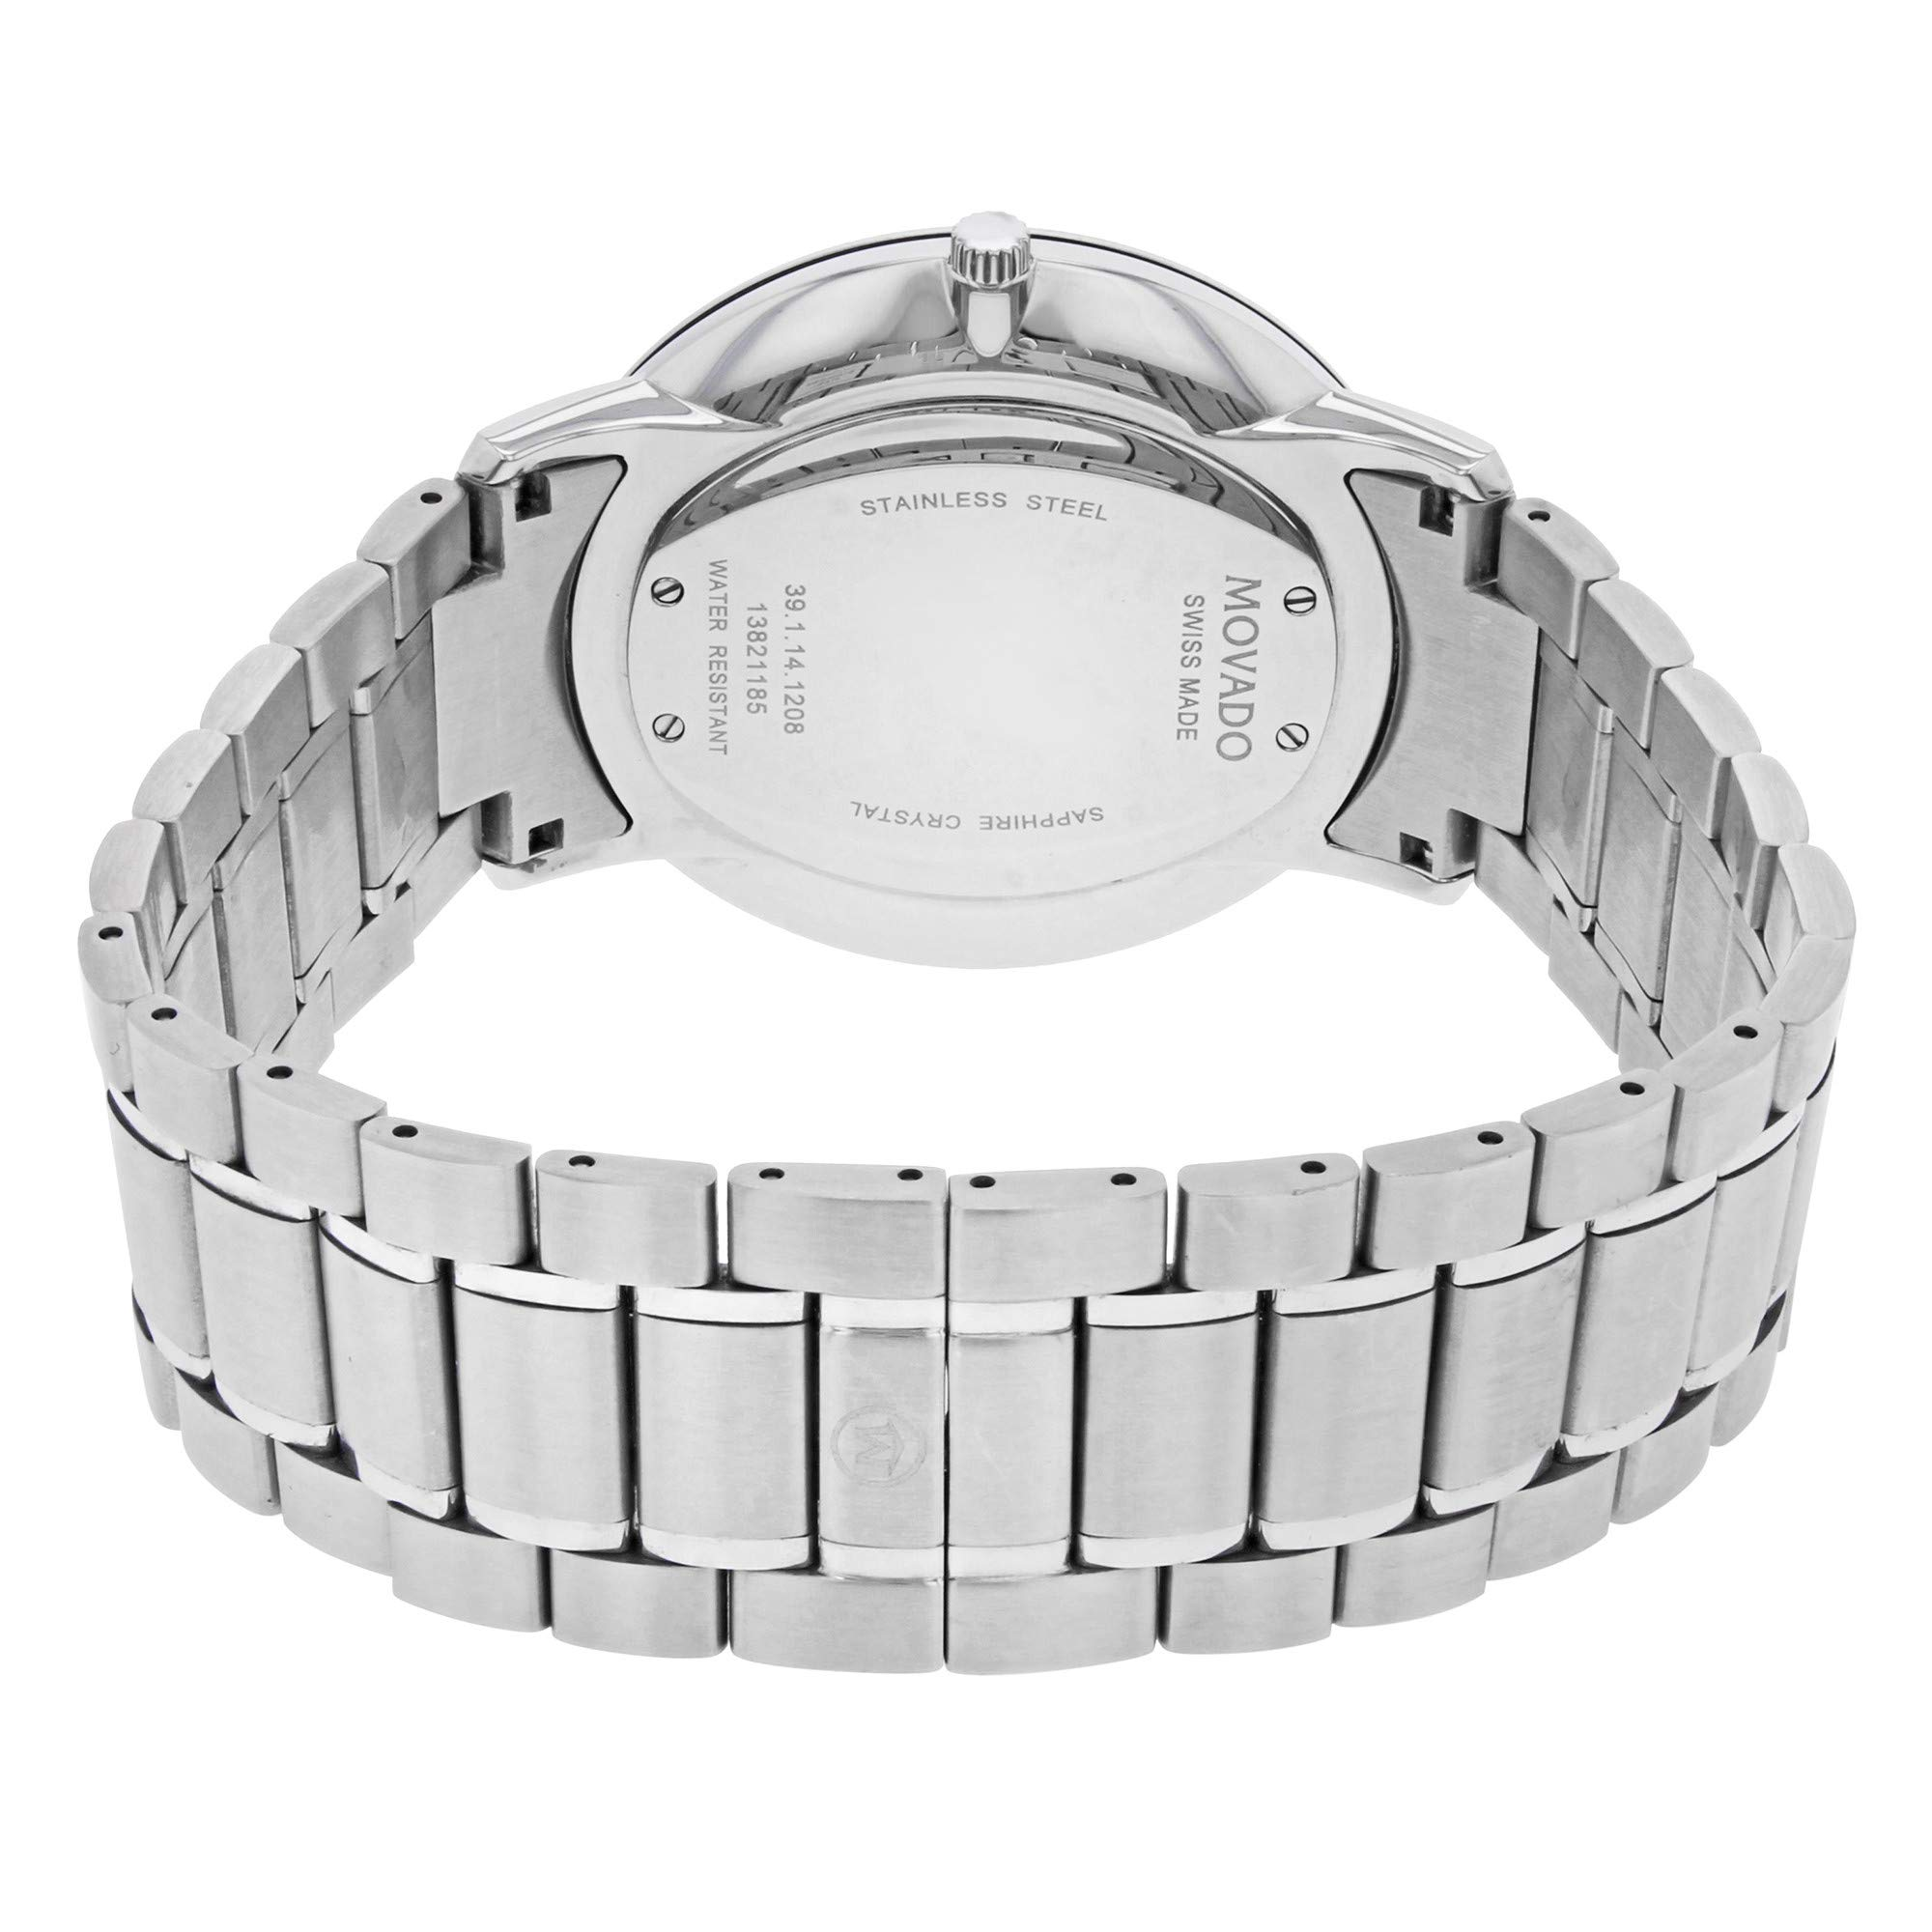 Movado Classic Quartz Male Watch 0606687 (Certified Pre-Owned) by Movado (Image #2)